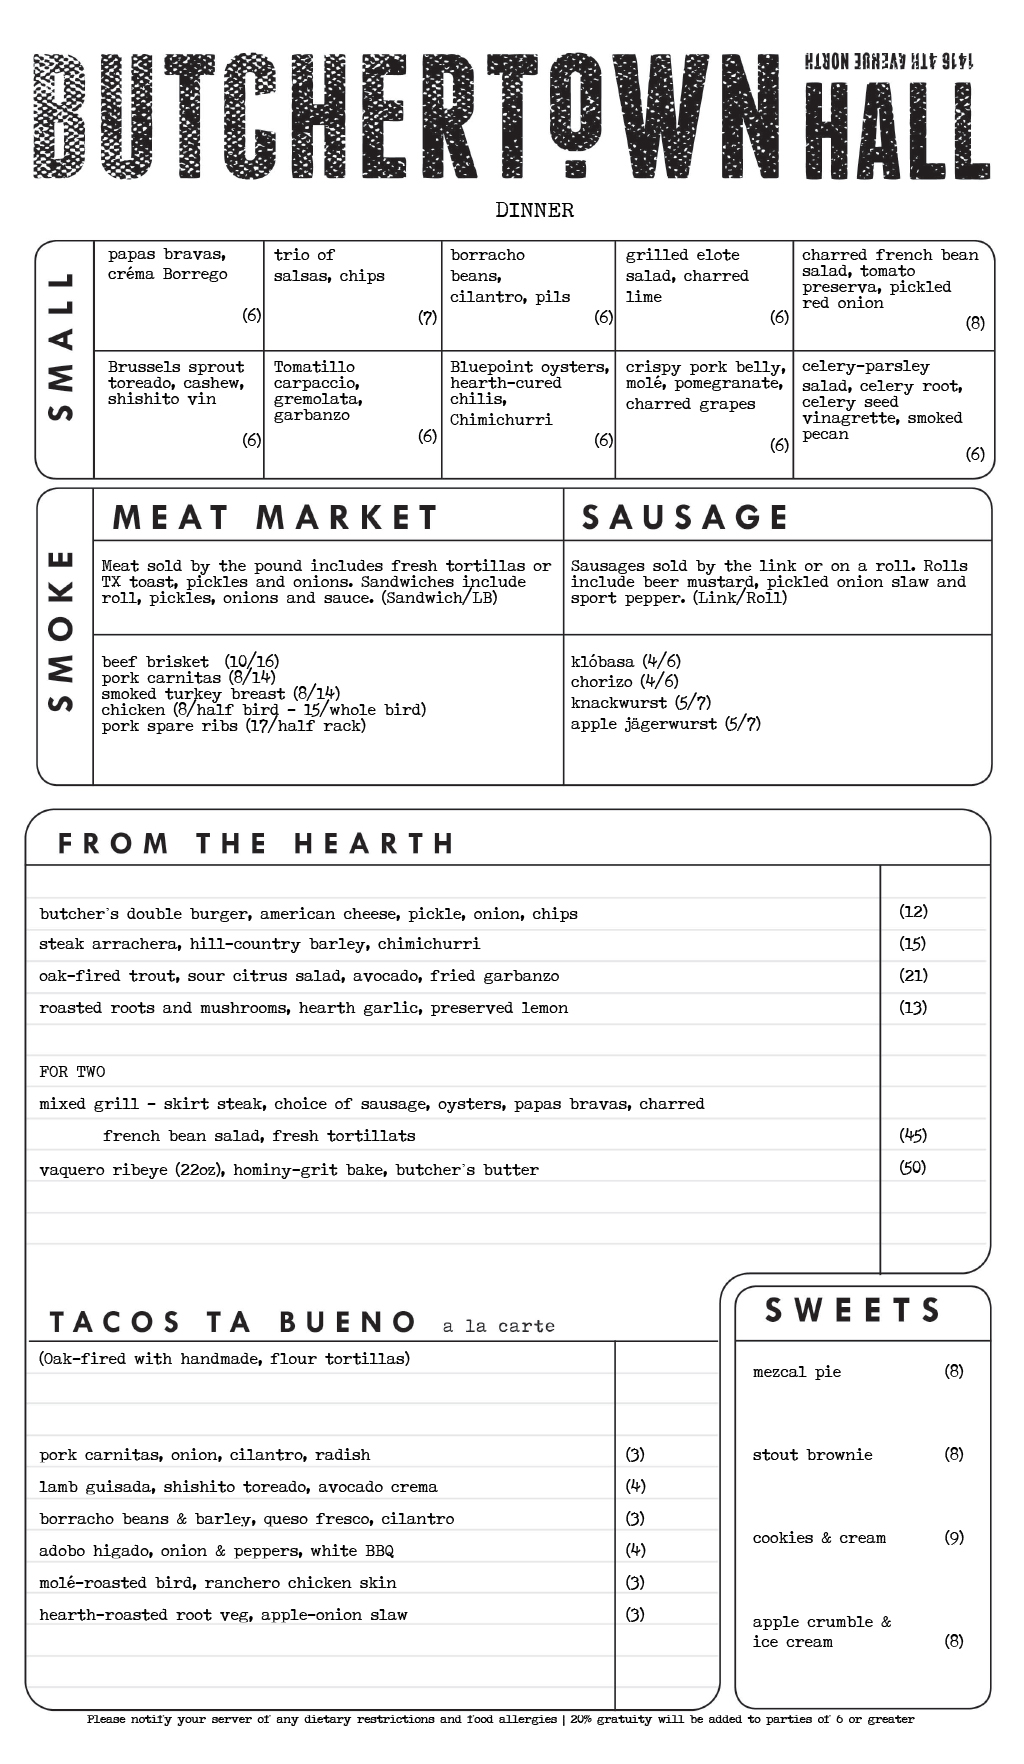 Microsoft Word - BTH_LUNCH_Menu(regular)Feb17.docx